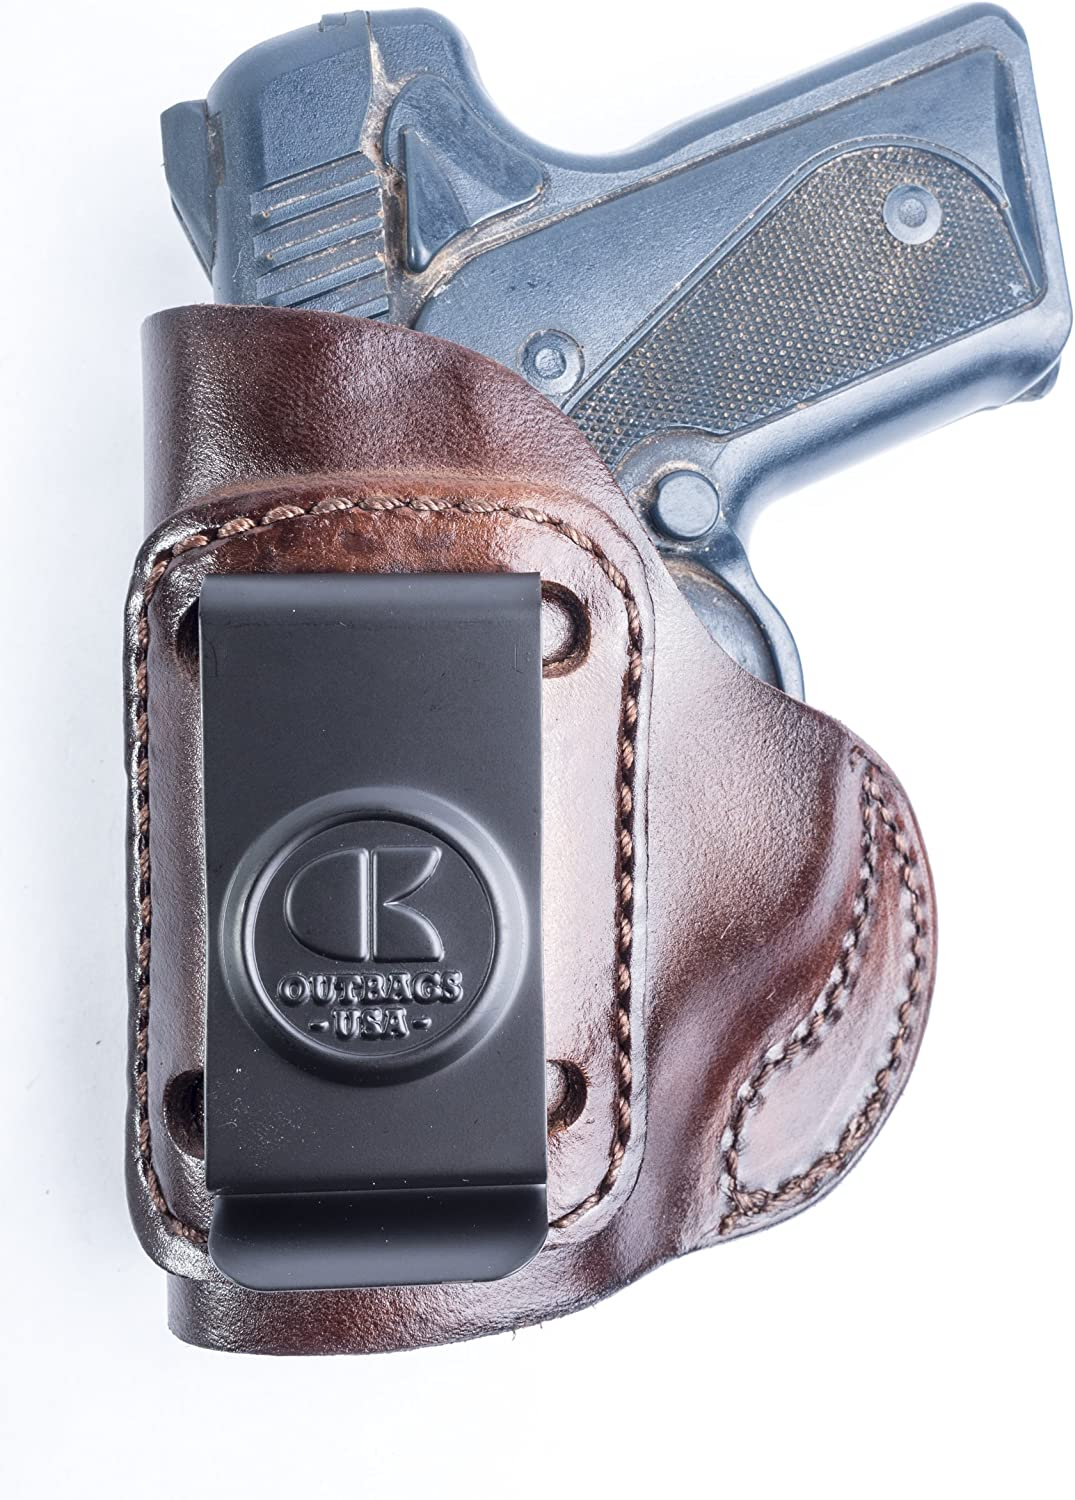 It is very popular OutBags USA LS4911 Full Grain Leather IWB Hols Gun Carry Conceal favorite